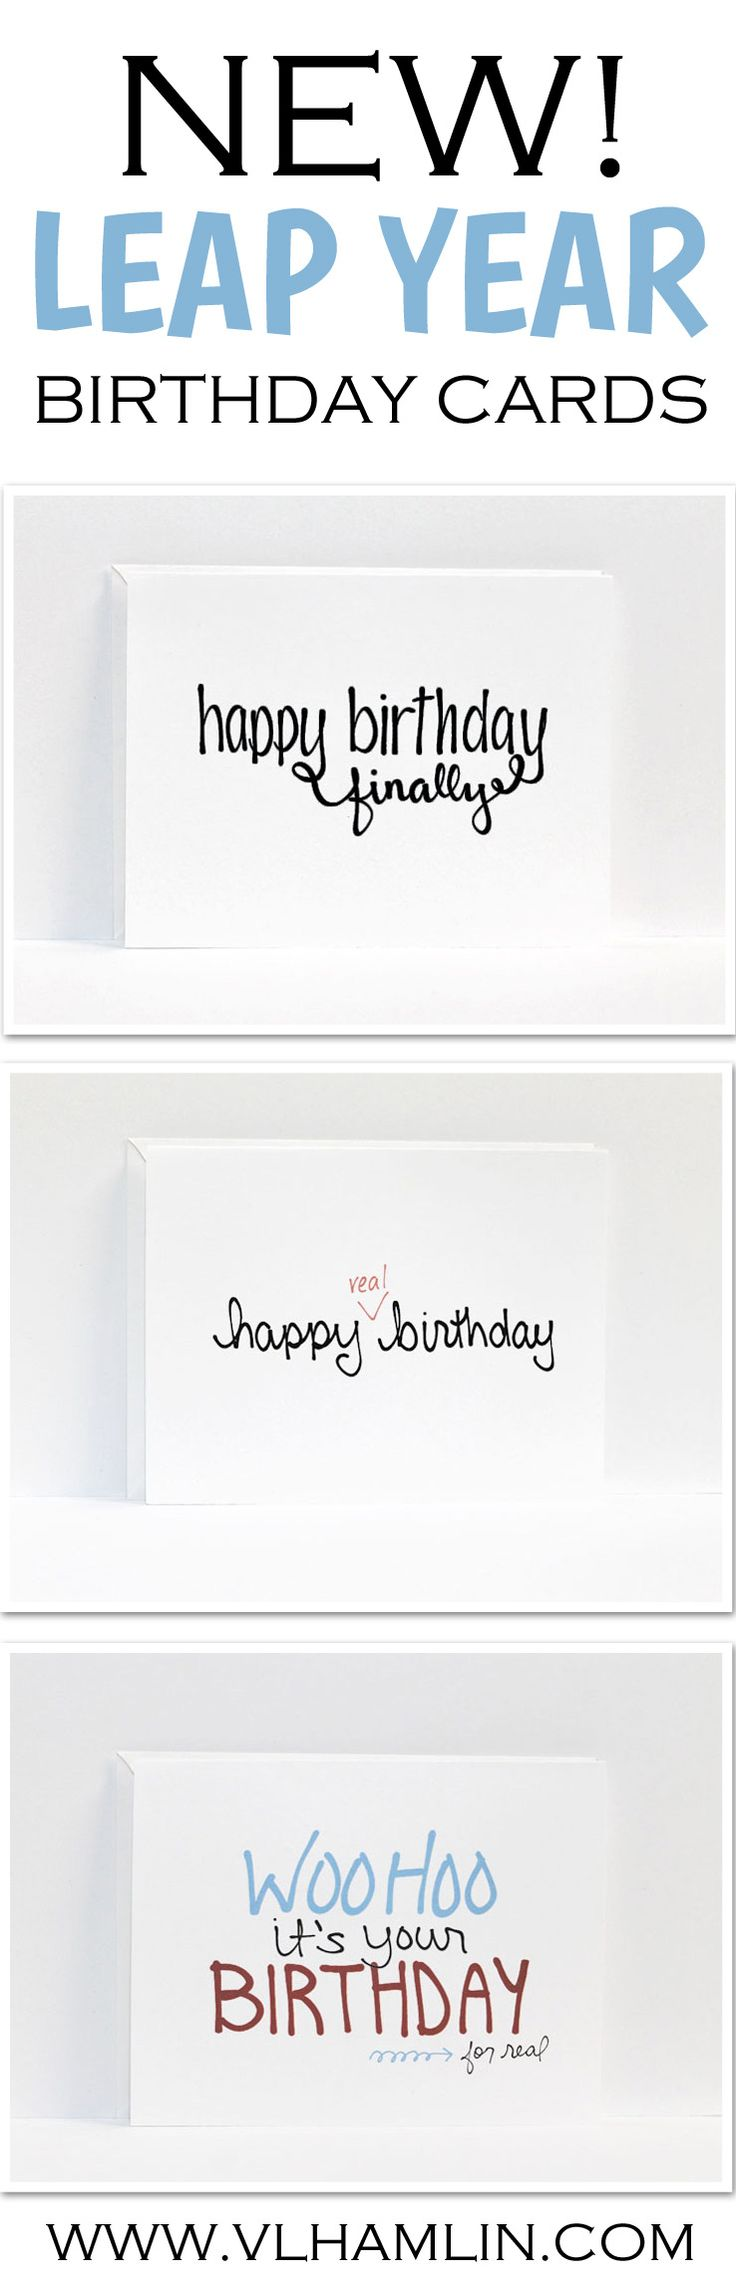 Leap Year Birthday Cards